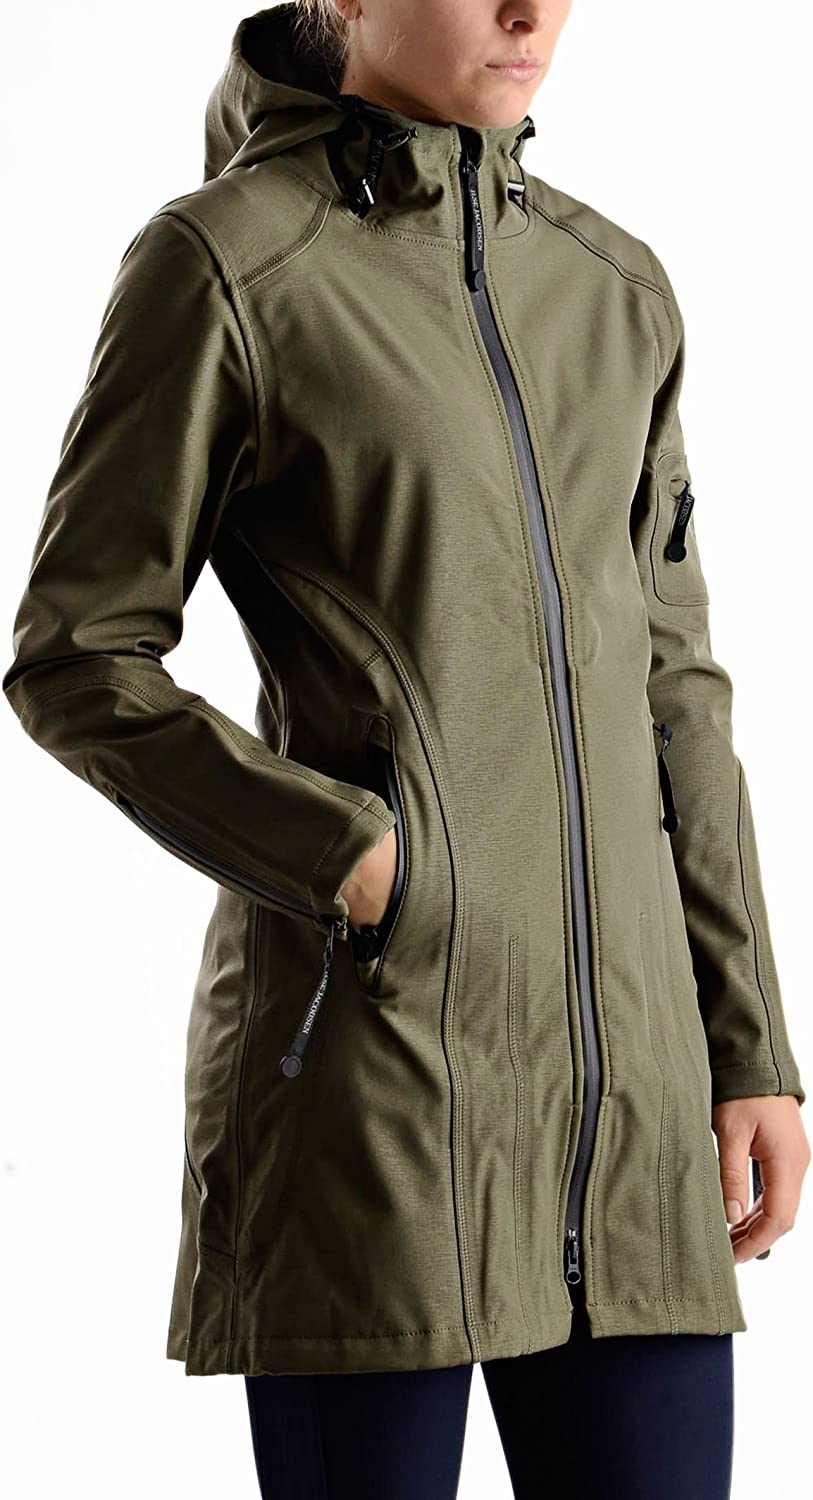 Ilse Jacobsen Chaqueta Impermeable para Mujer